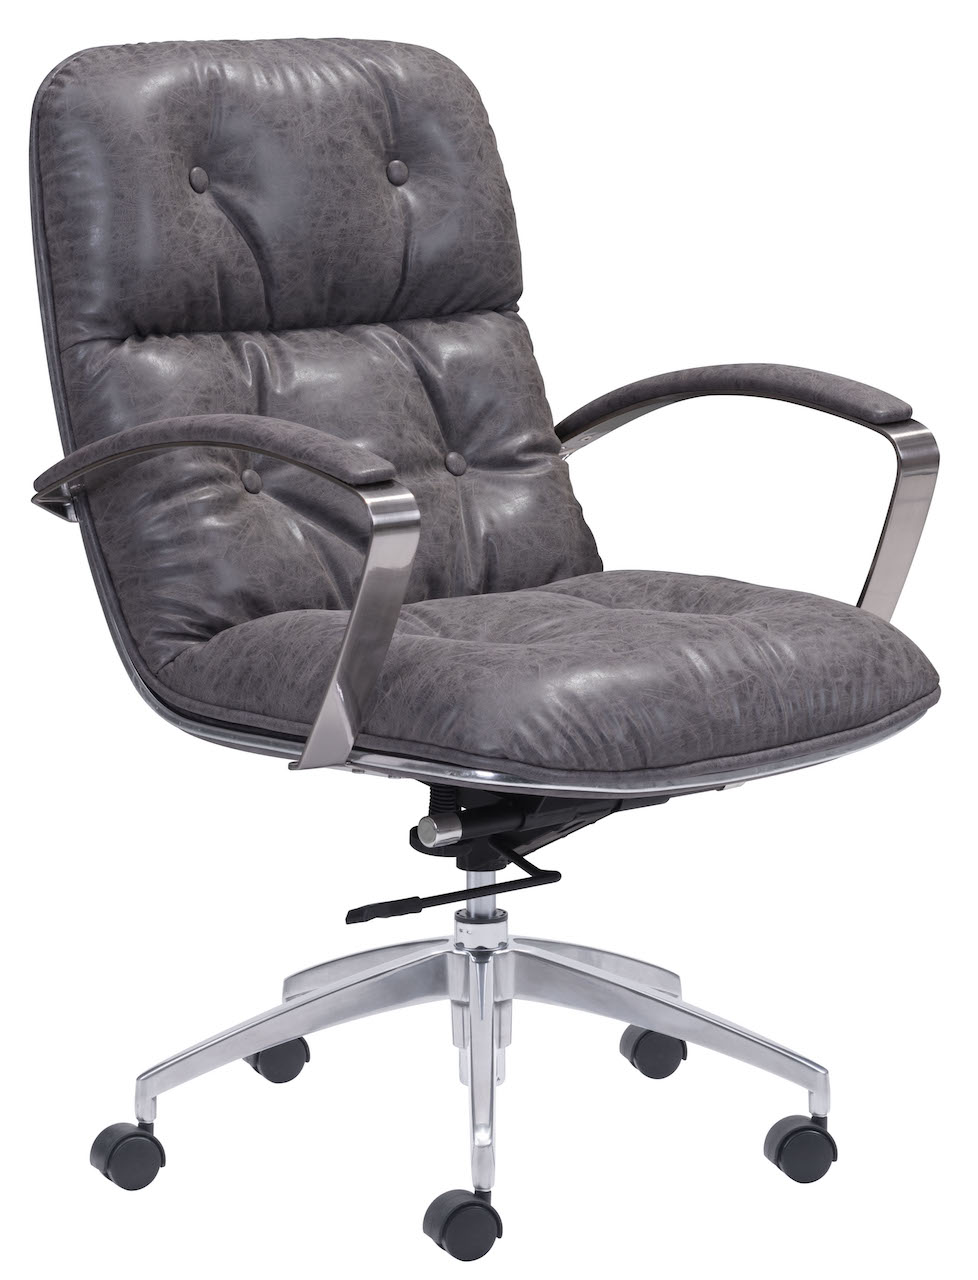 avenue-office-chair-vintage-gray.jpg